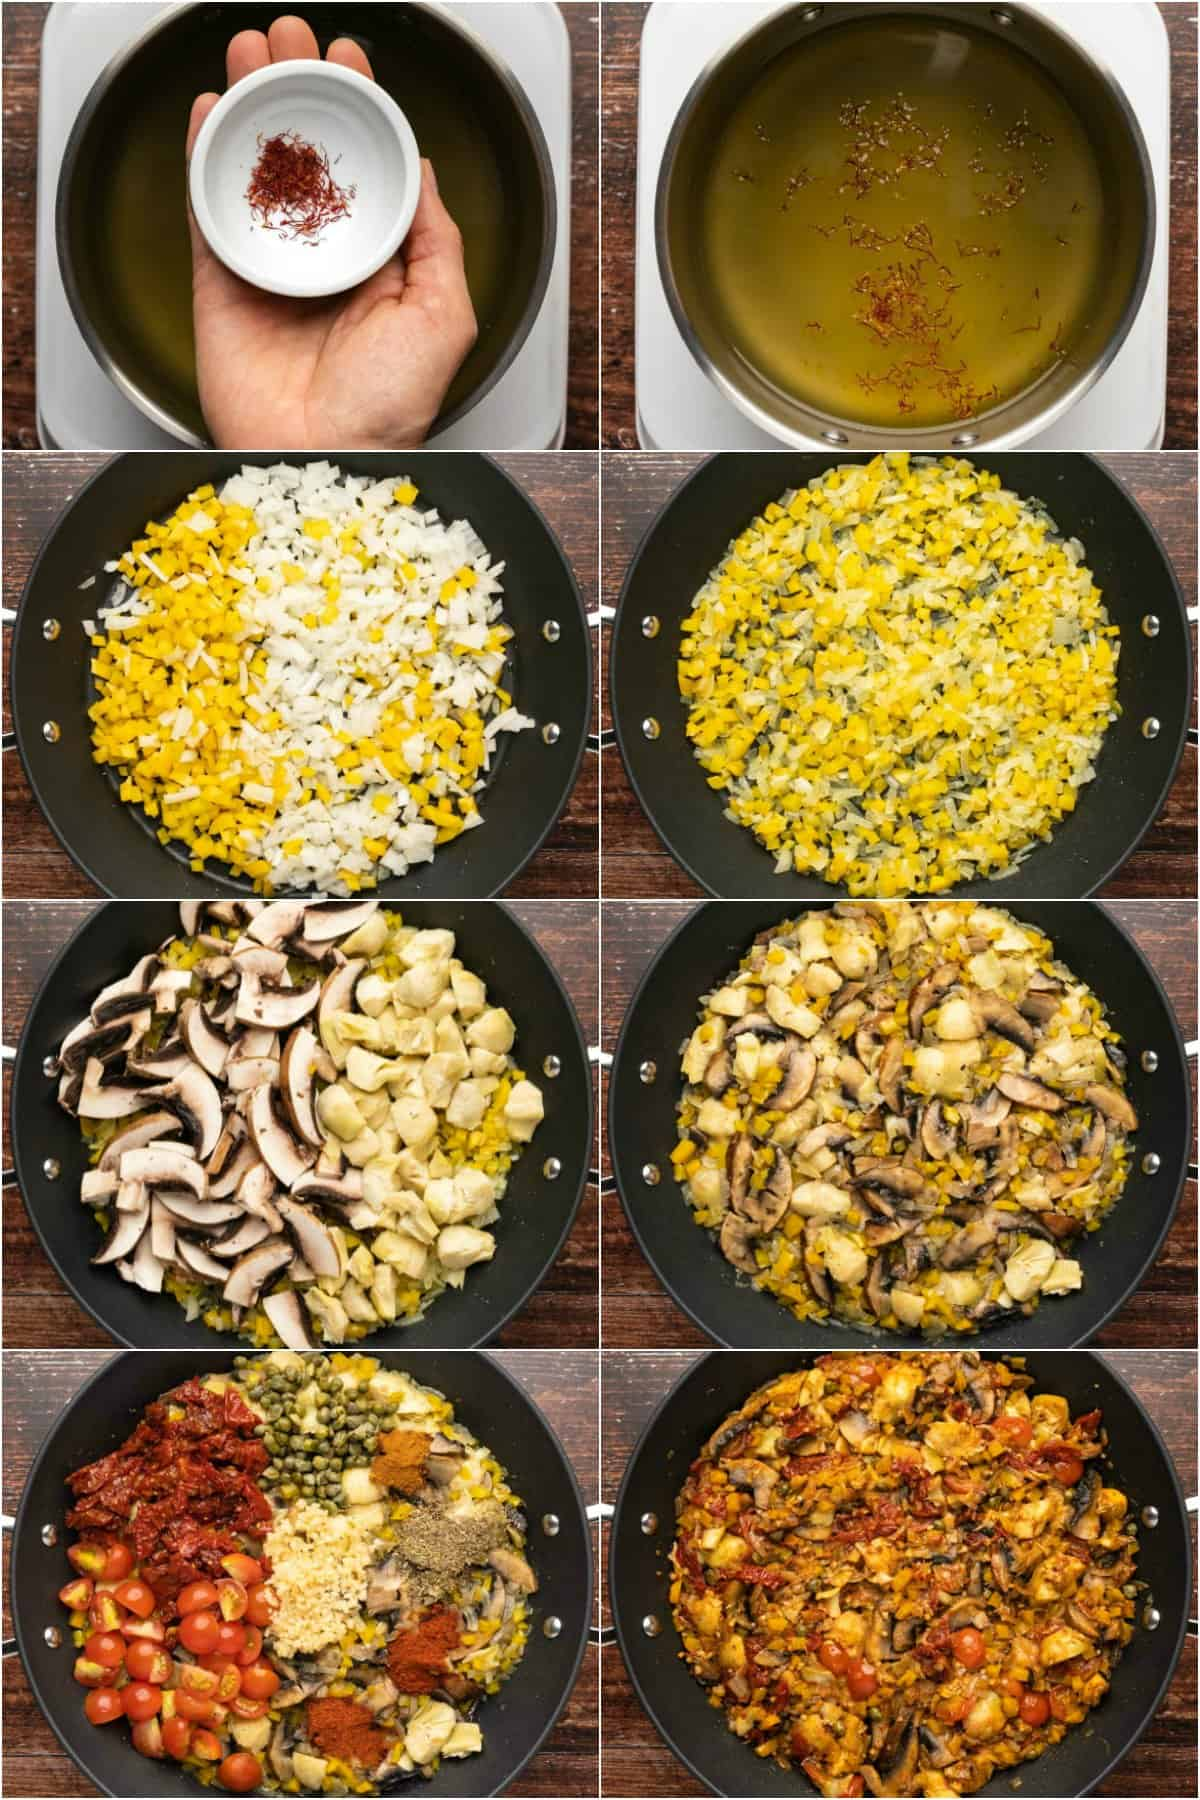 Step by step process photo collage of making vegetable paella.